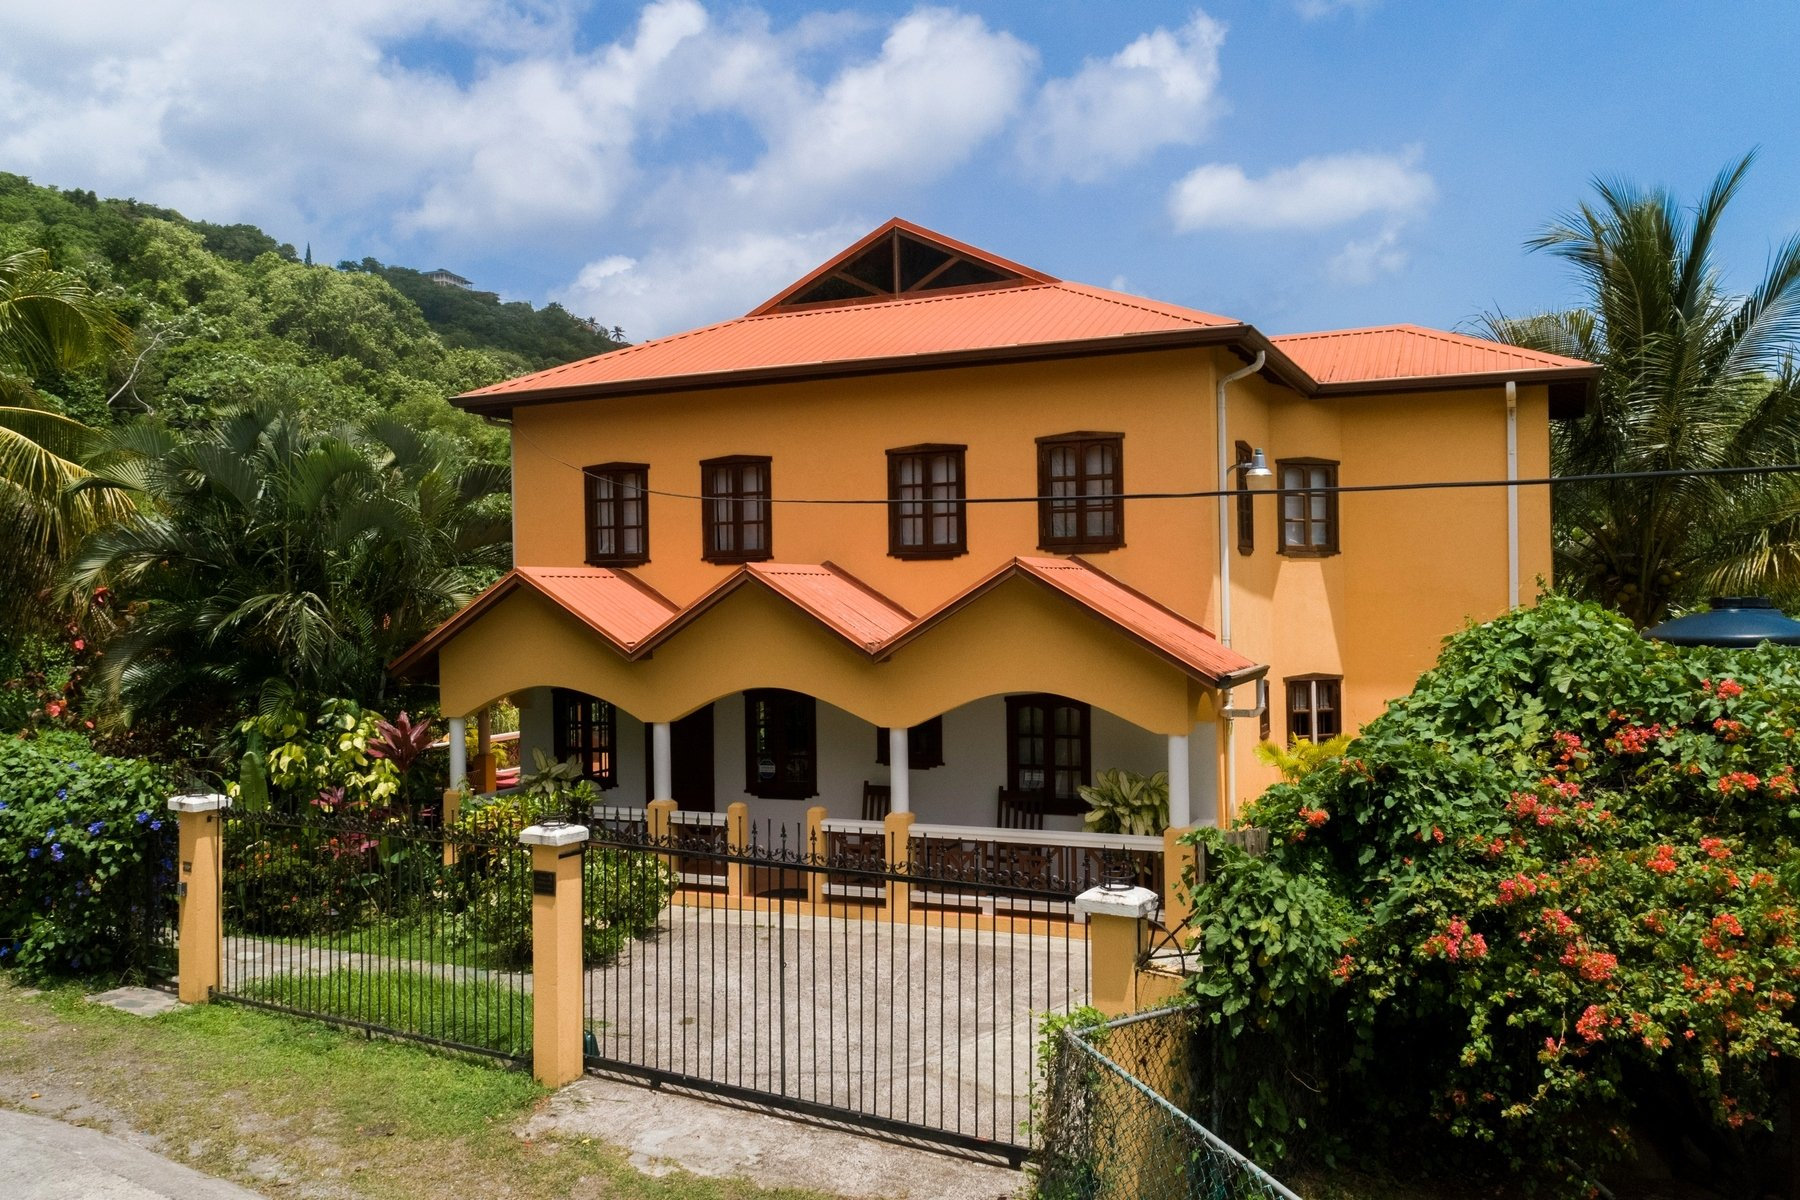 House in Castries, Saint Lucia 1